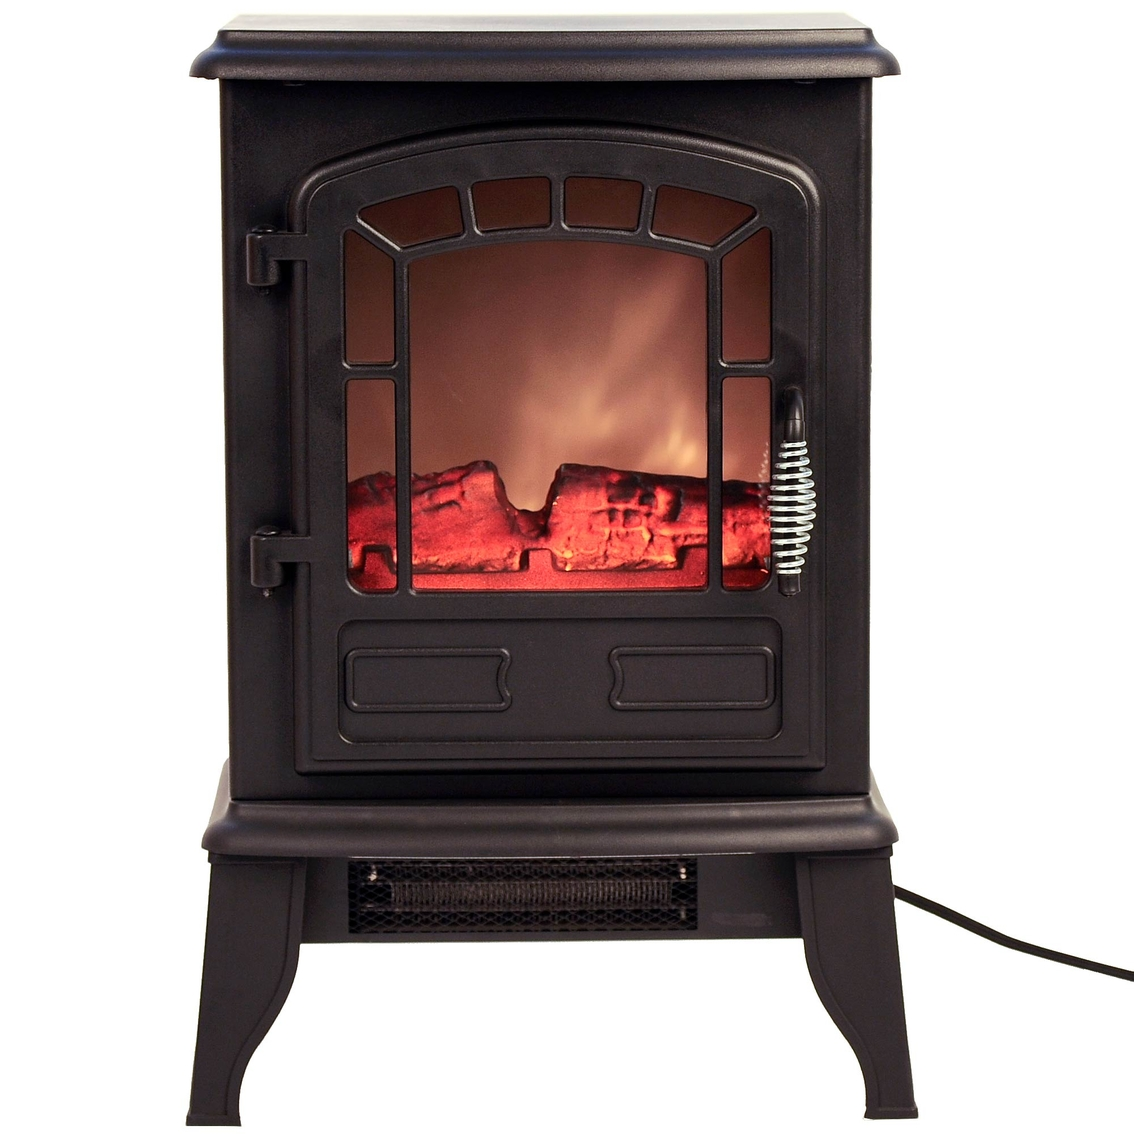 Super Kent 110V Electric Stove Heater Indoor Heaters Download Free Architecture Designs Scobabritishbridgeorg